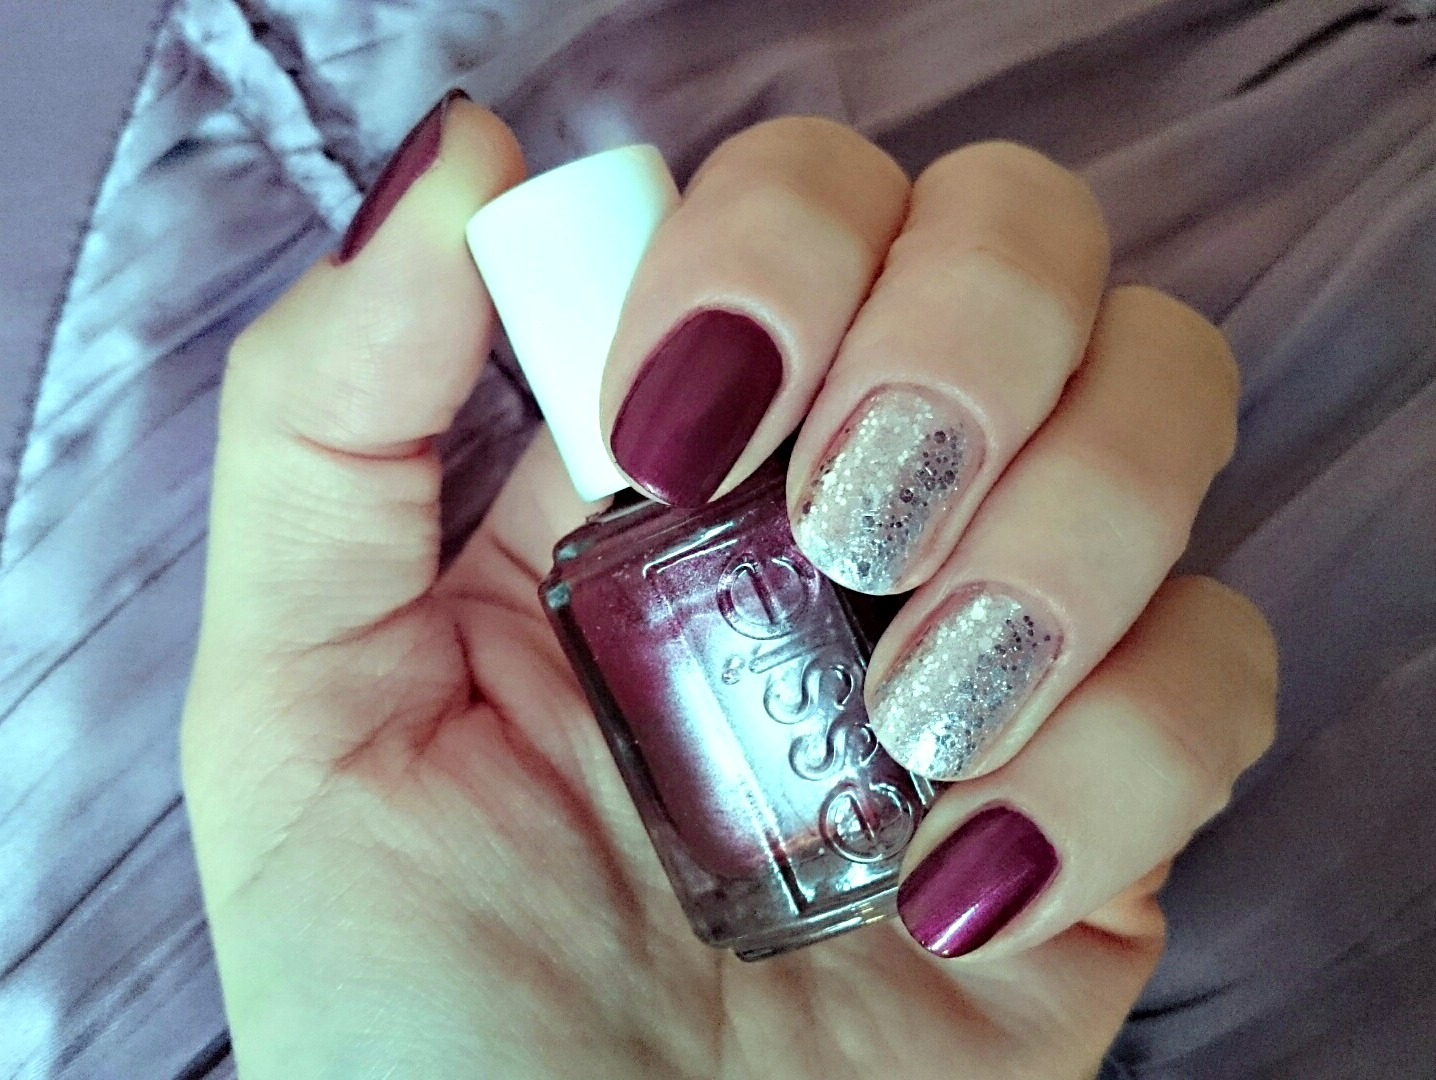 Essie Sssexy with Ciate Locket